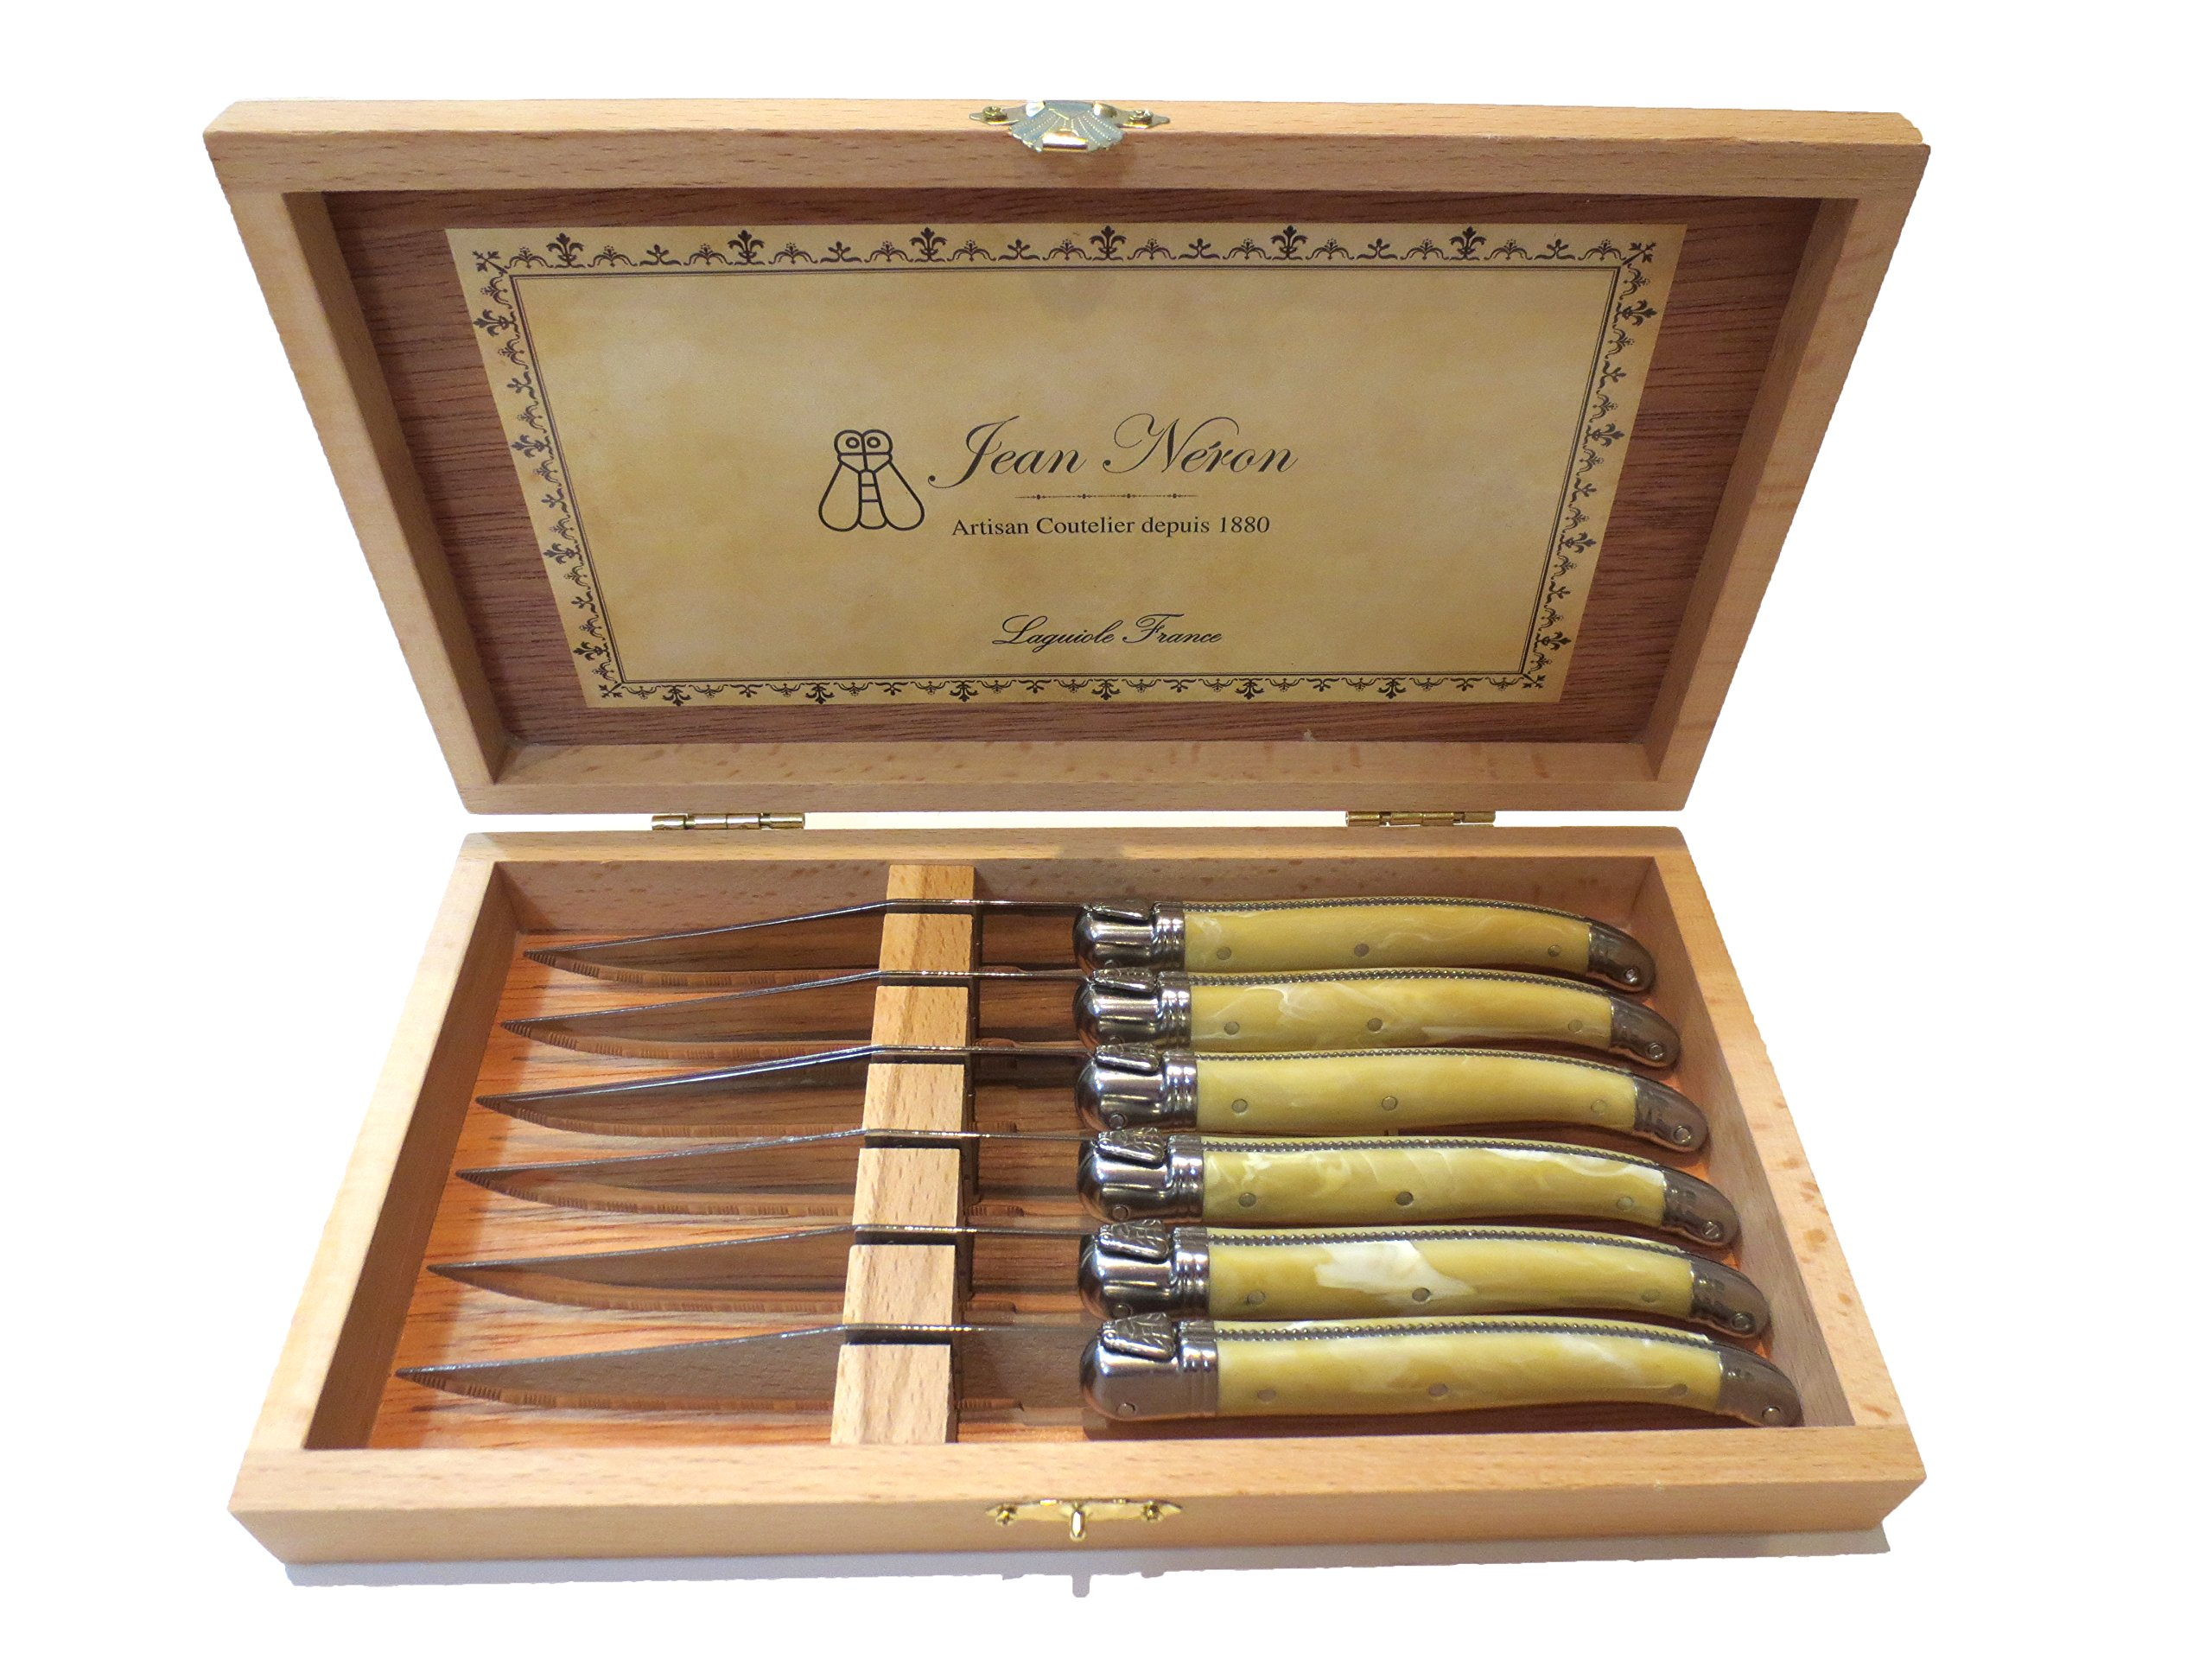 Laguiole Pale Horn Platine Knives in Presentation Box (Set of 6)